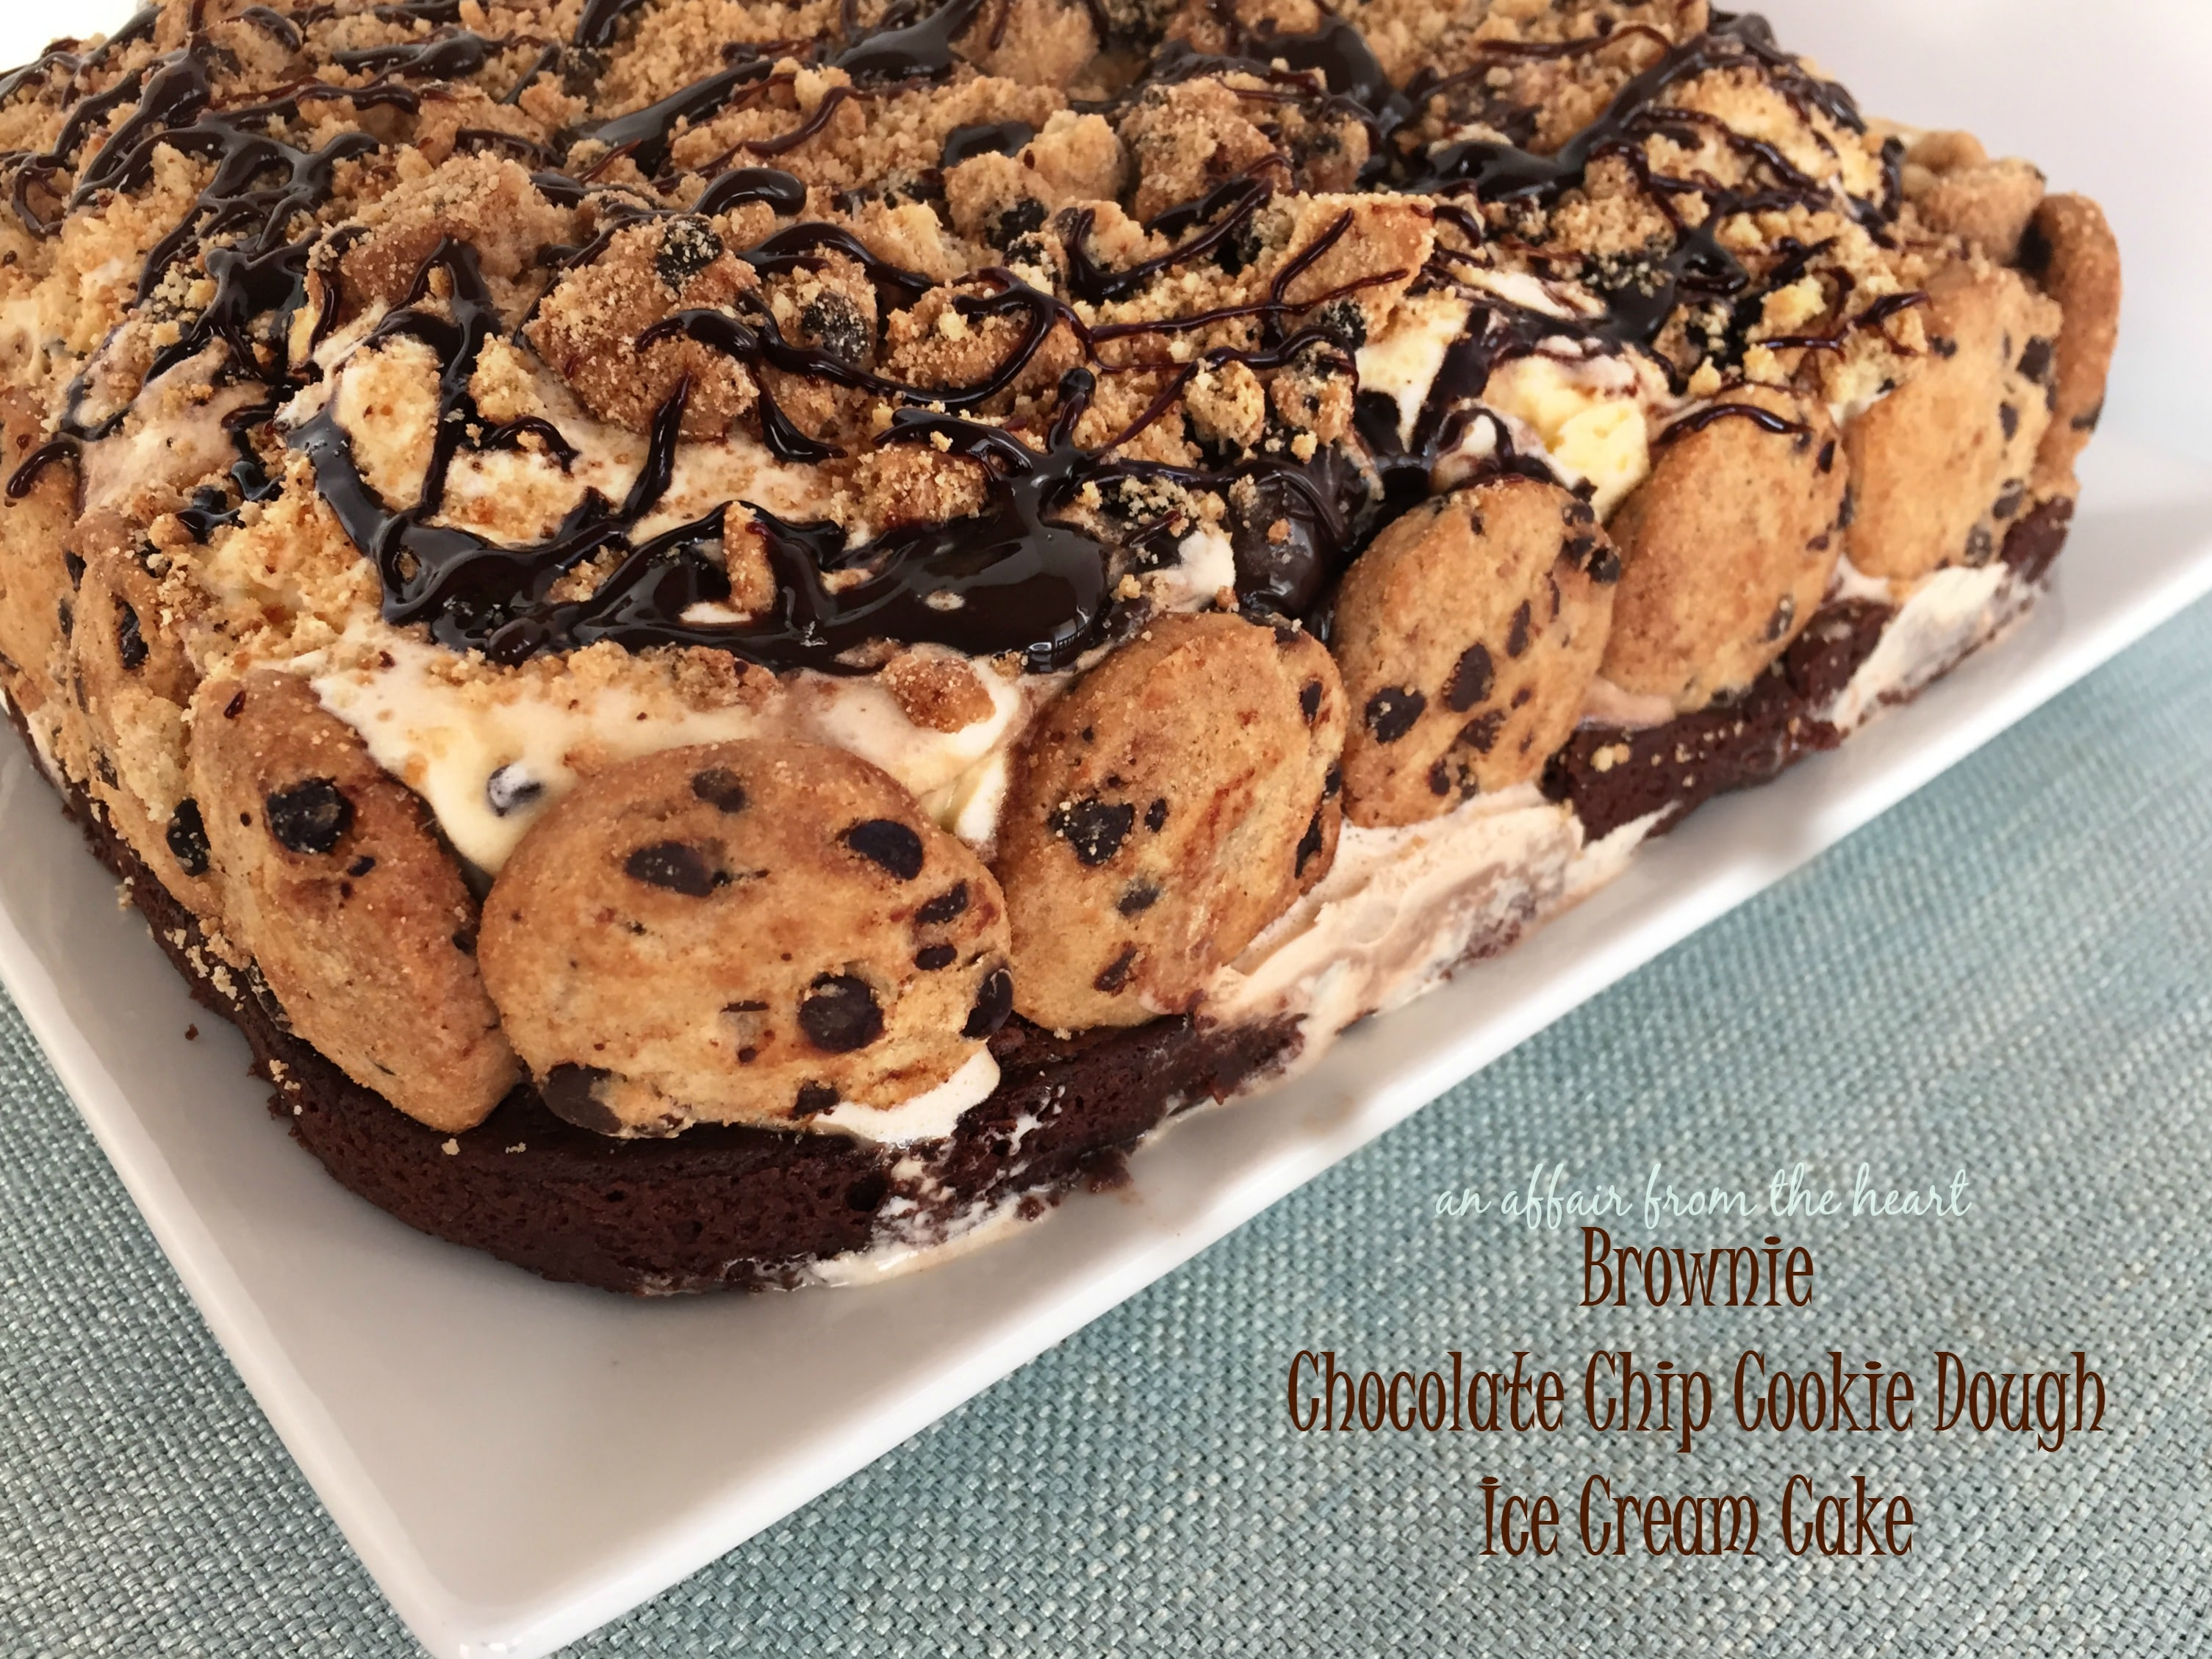 Cookie Dough Ice Cream Cake Brownie chocolate chip cookie dough ice ...